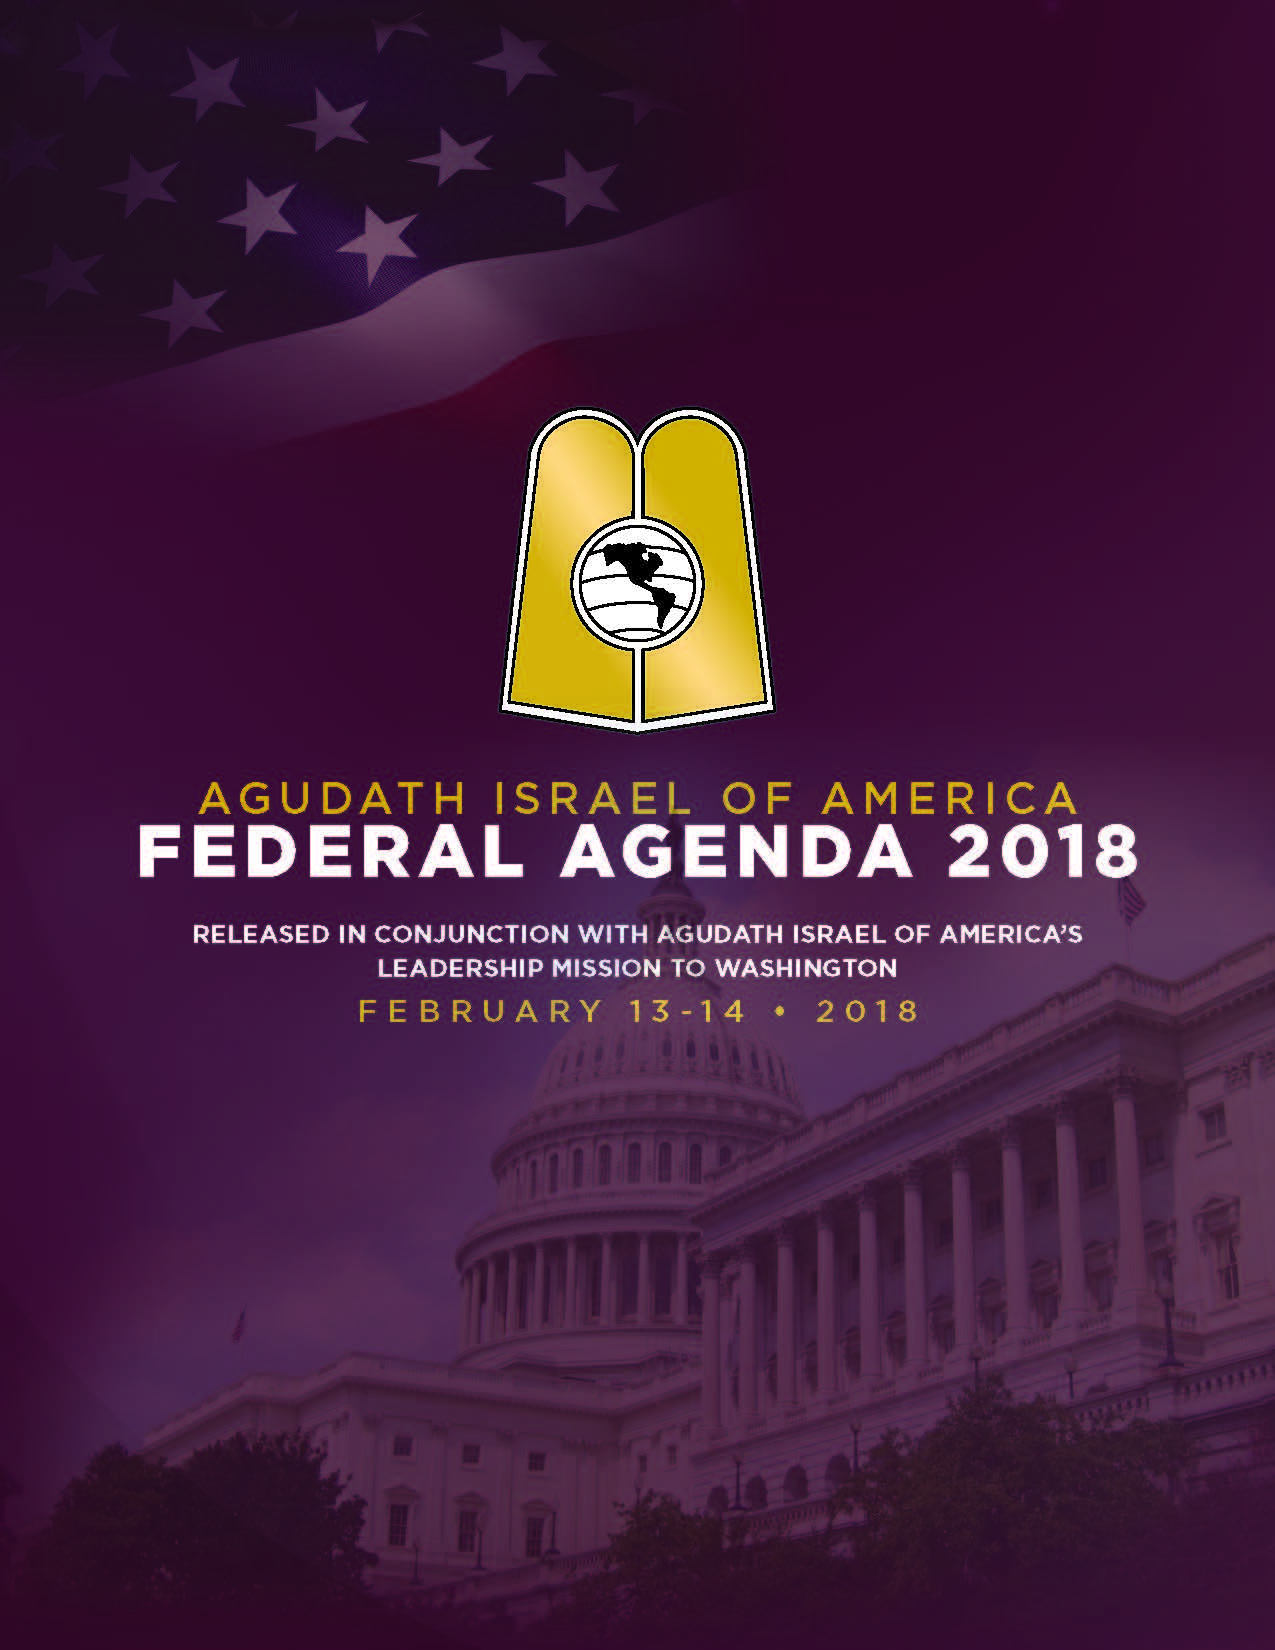 agudath israel 2018 mission to washington d c \u2013 boro park 24agudath israel of america is in washington d c from february 13 14 jewish leaders met with federal representatives to talk about israel, the middle east